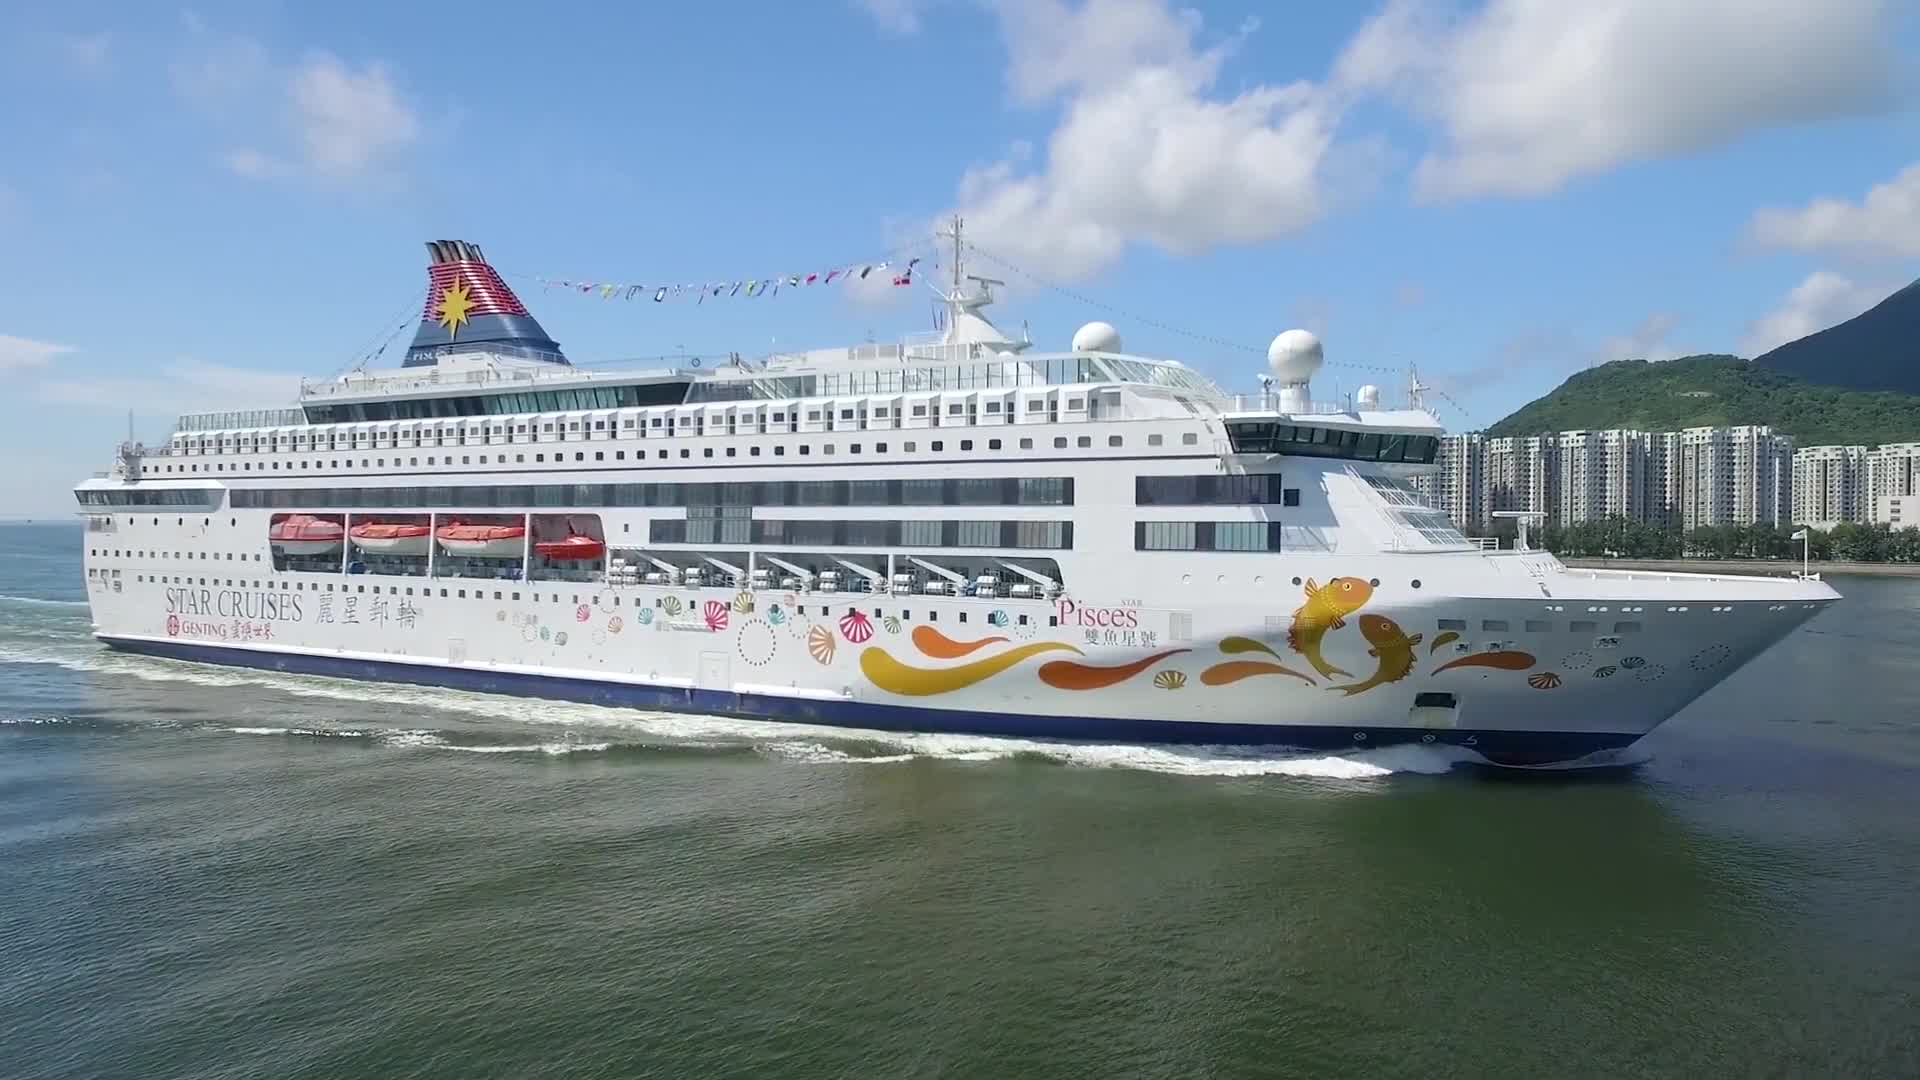 Video of star cruises